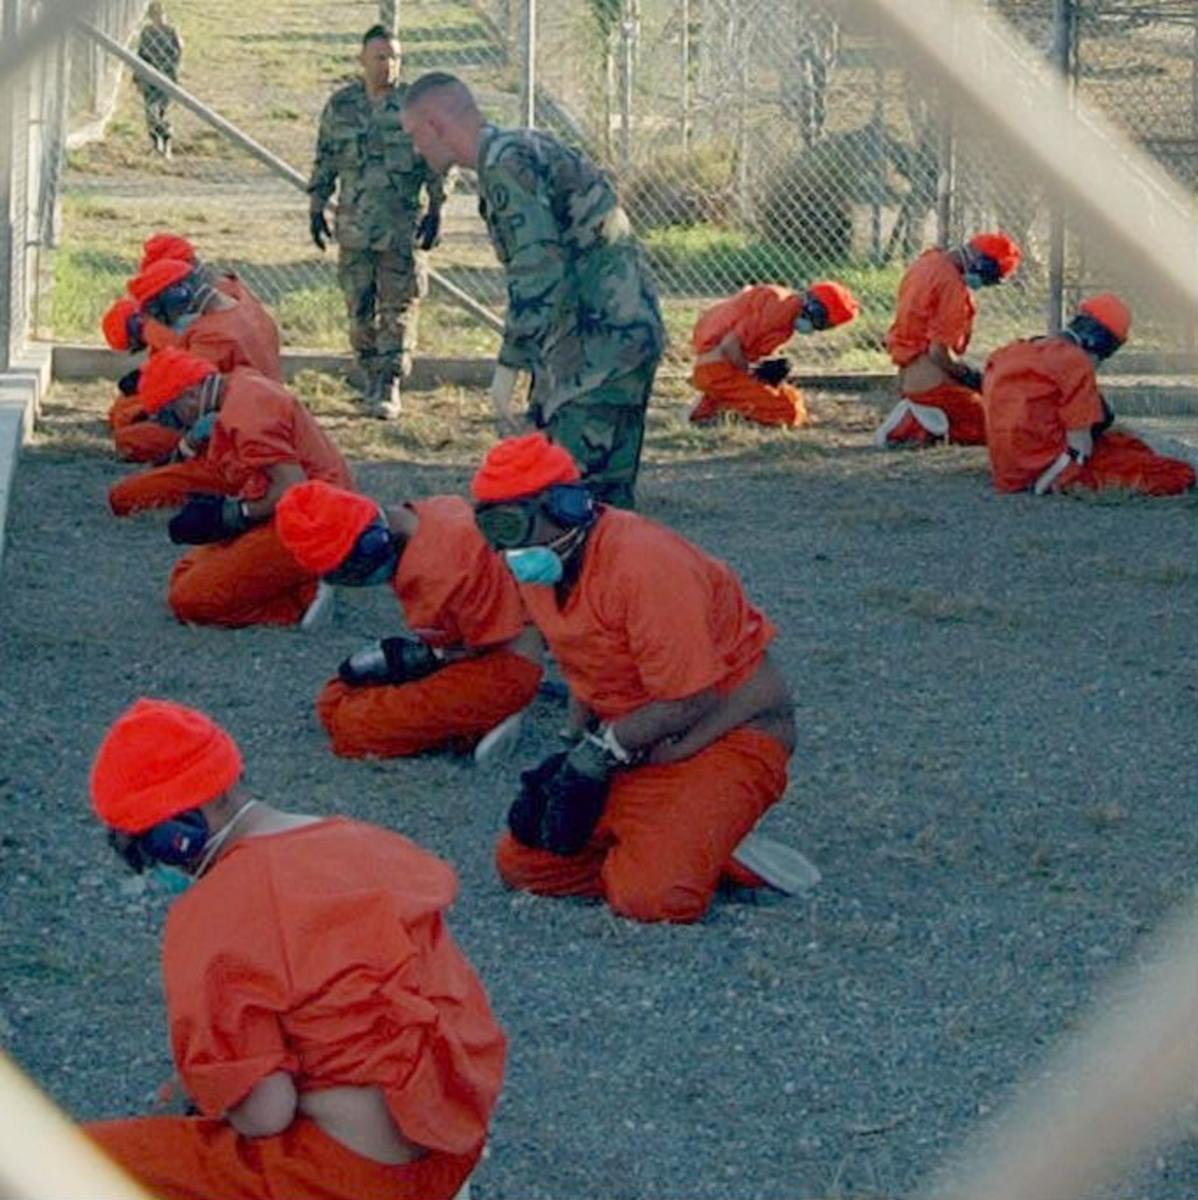 Gitmo detainees in 2002.